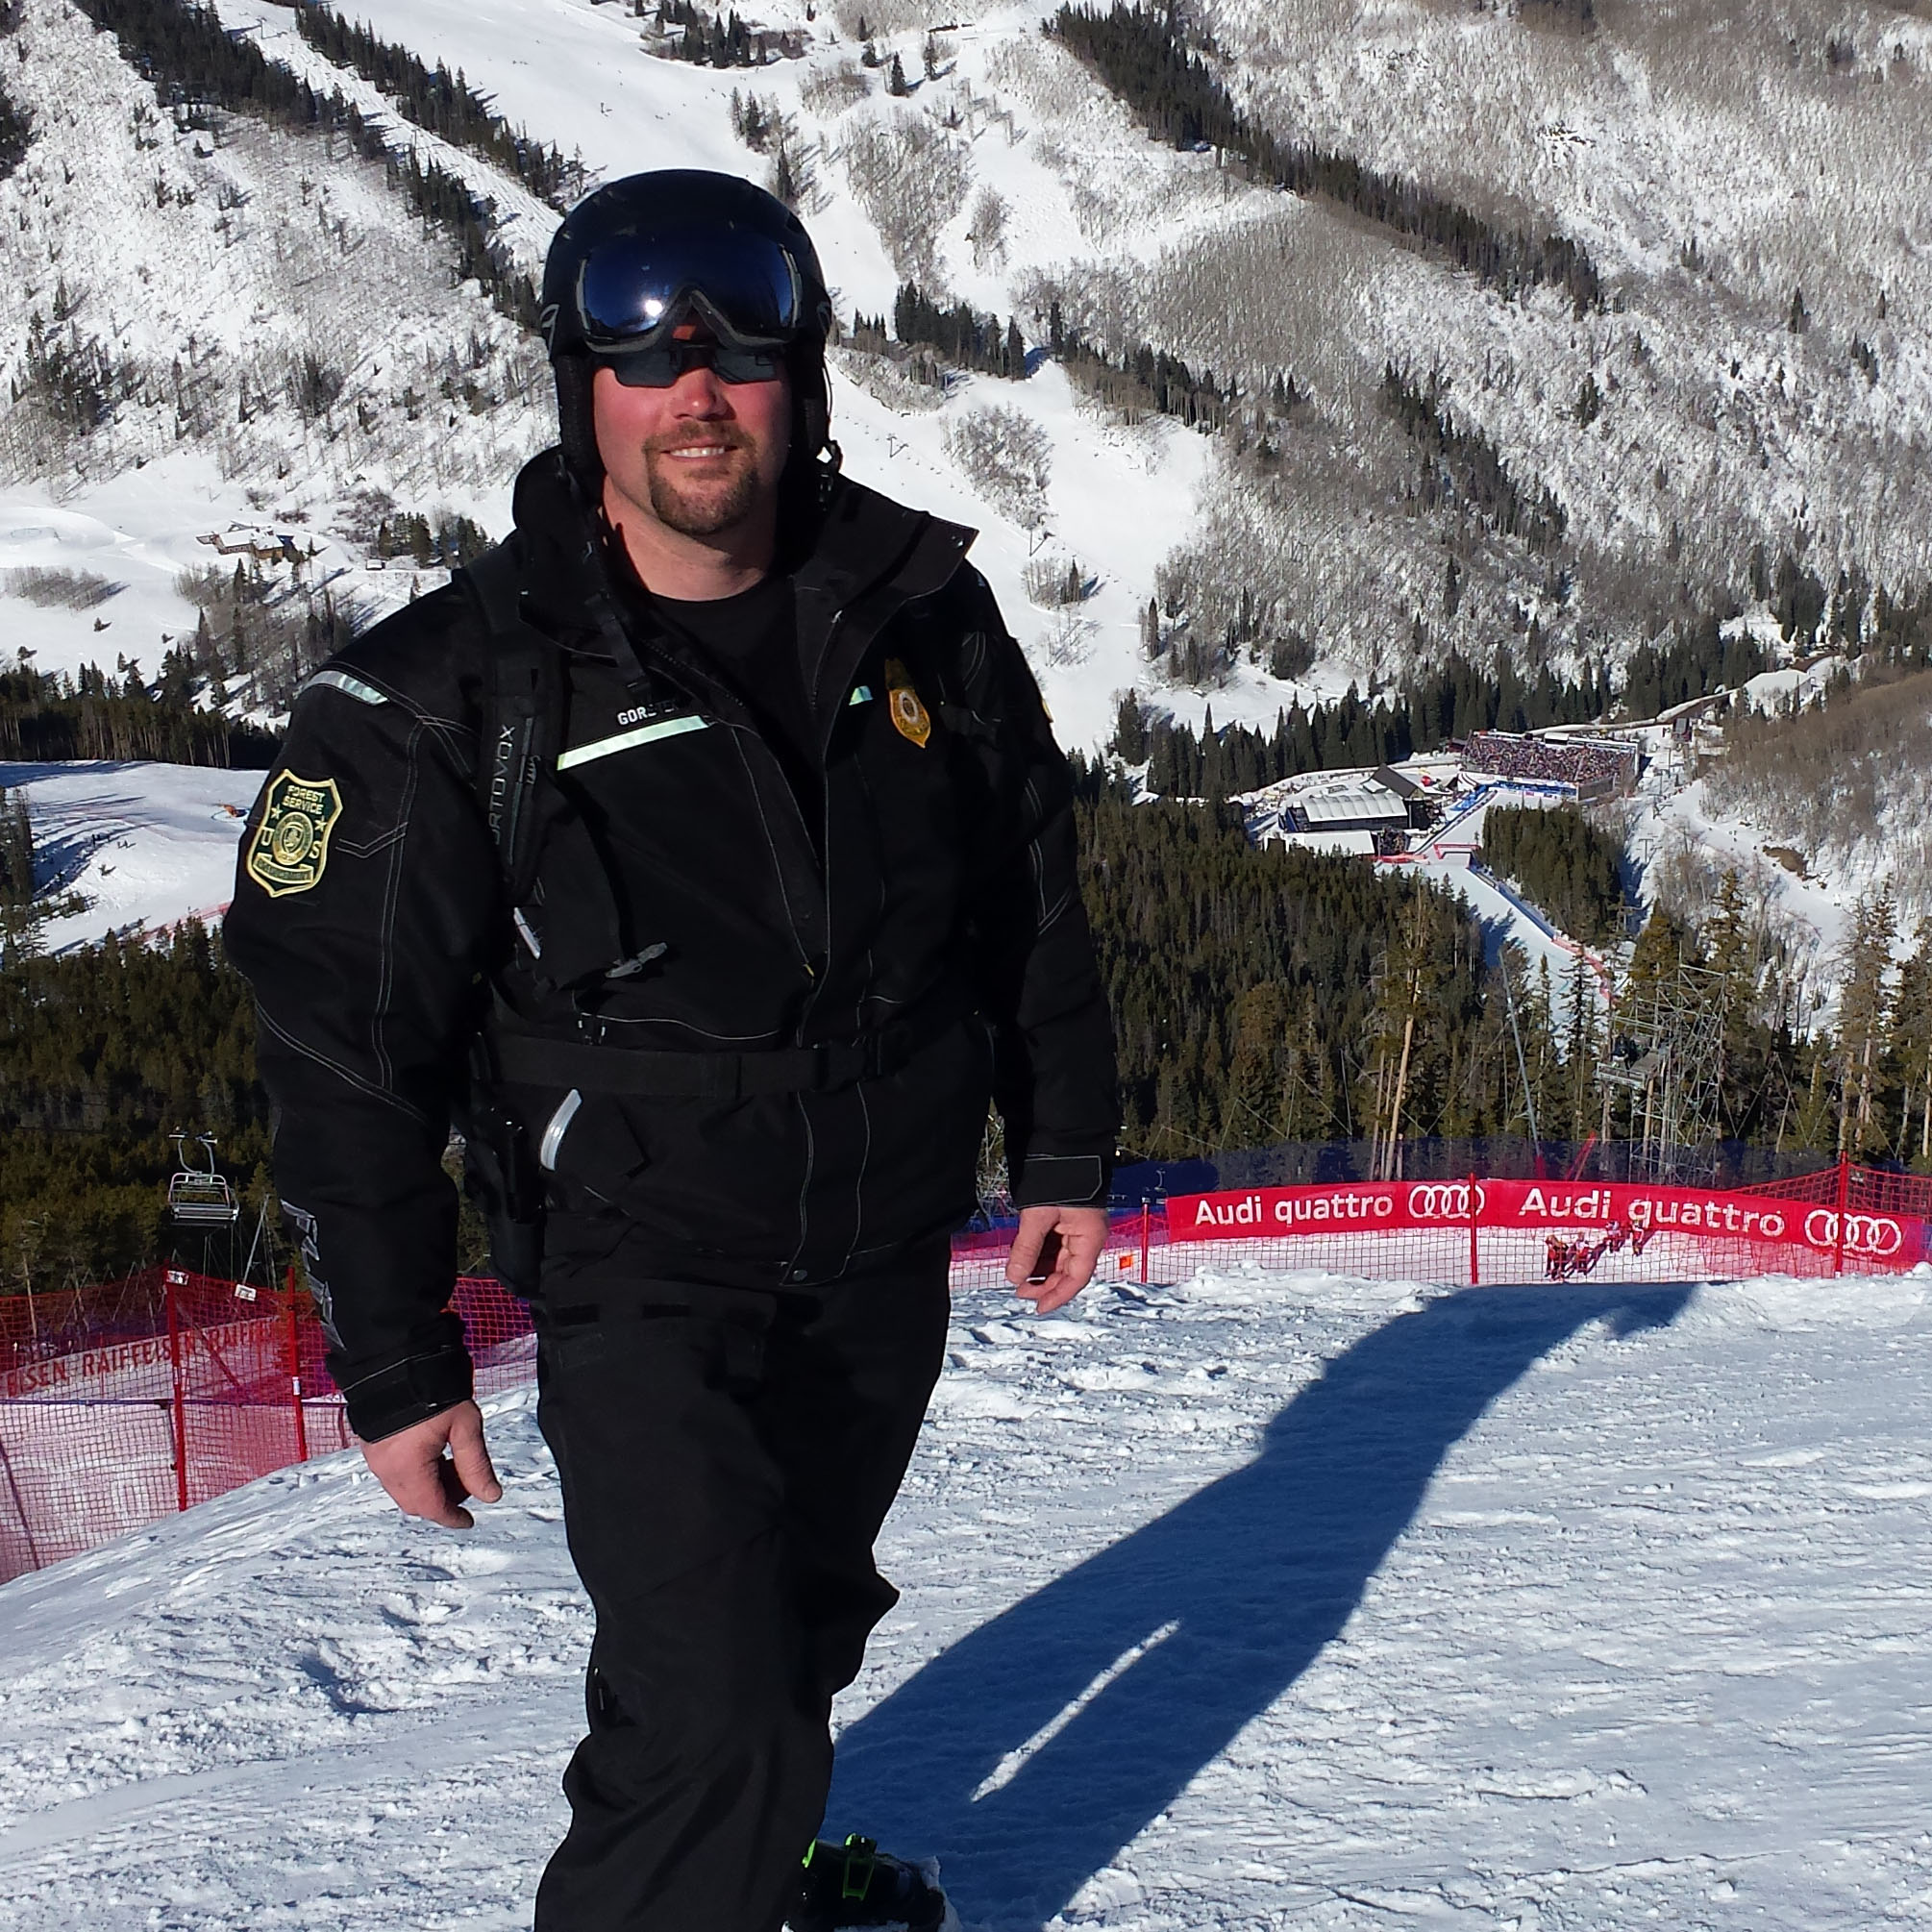 Special Agent Travis Lunders poses for a photo. (U.S. Forest Service photo)